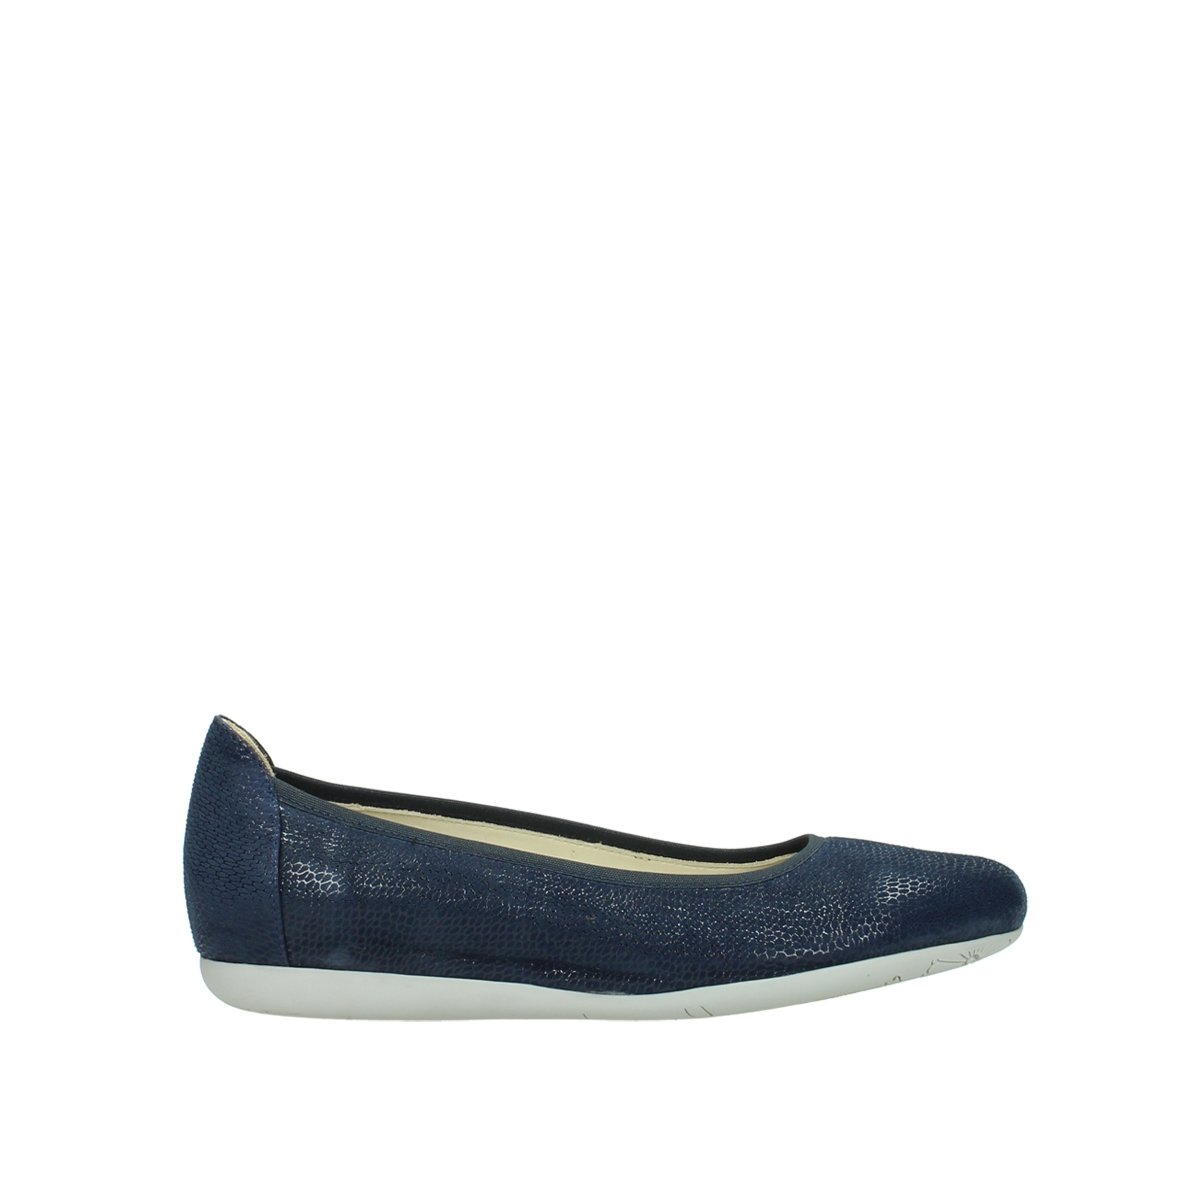 Wolky Comfort Ballet Pumps Tampa B079M8ZN82 41.5 EU|20800 Blue Leather